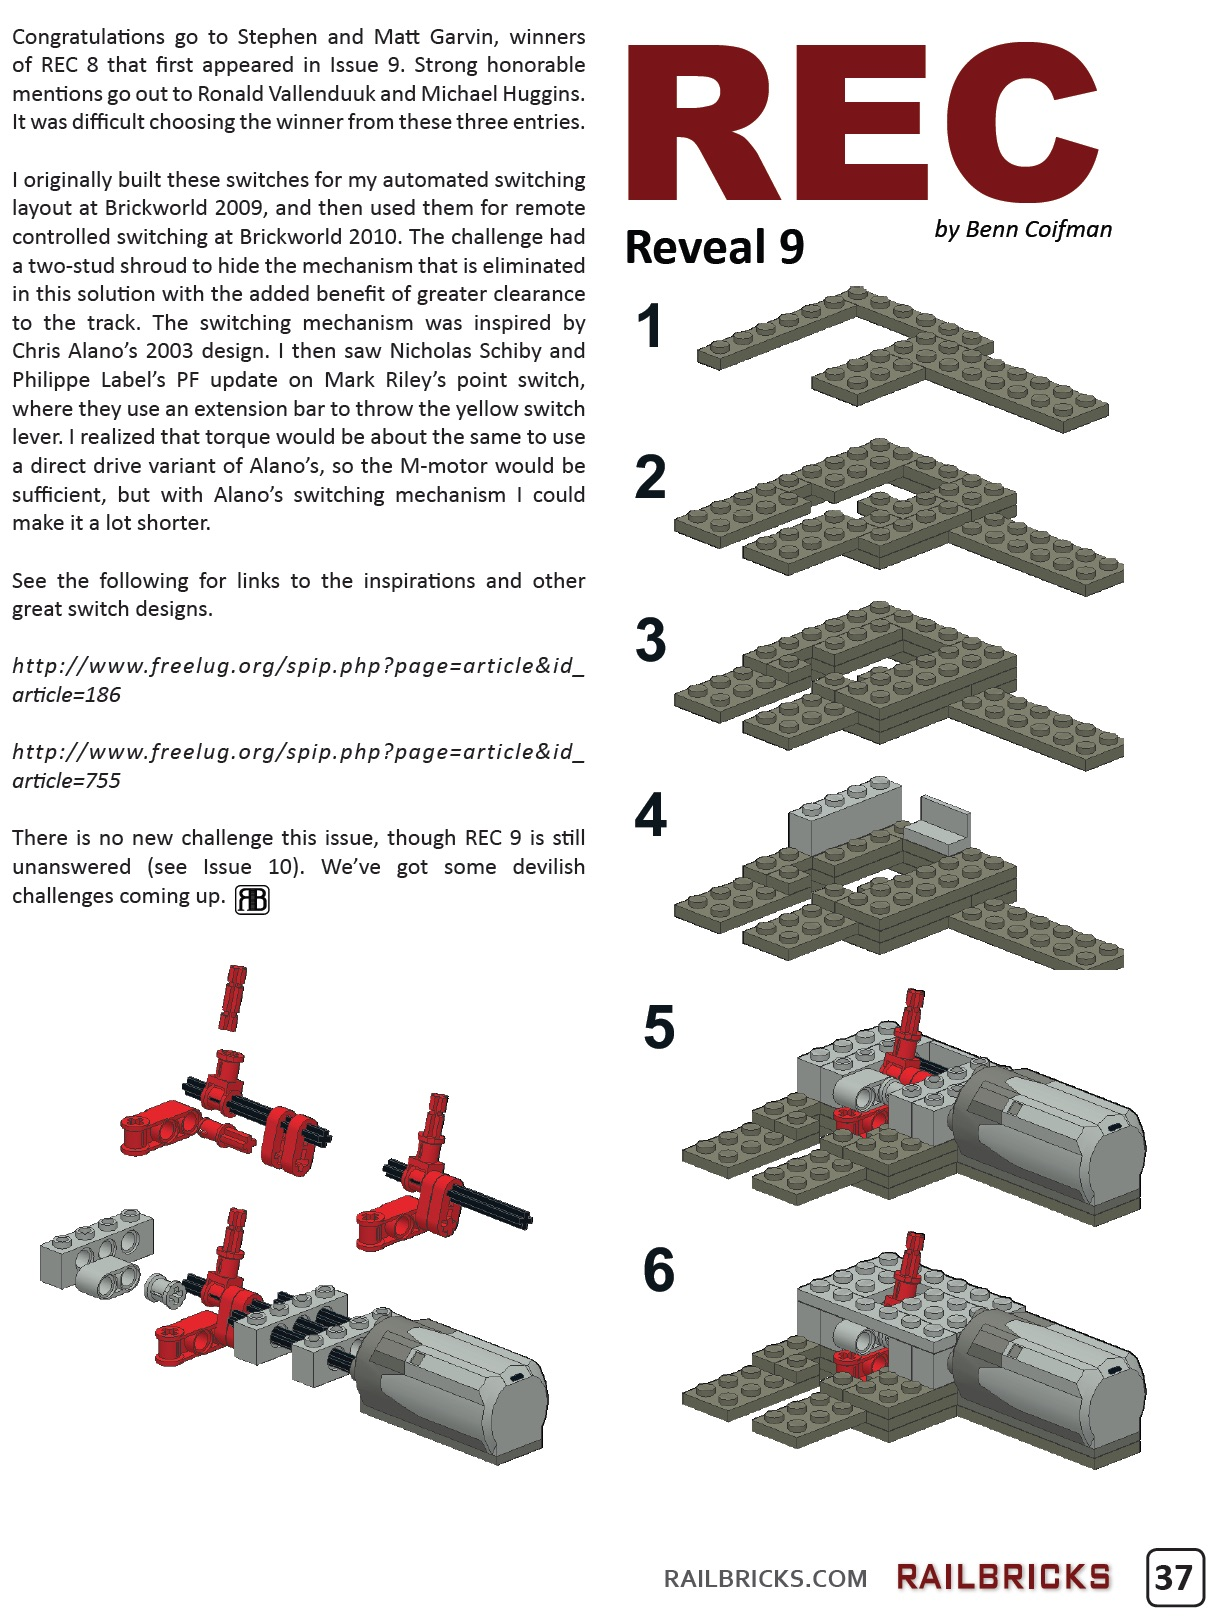 remote_20_rb12p37_rc_switch_reveal.jpg